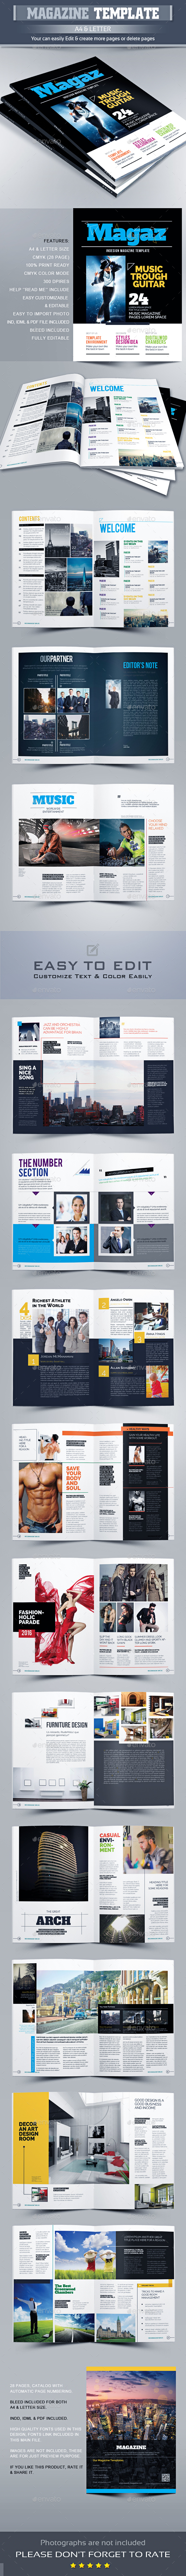 Minimal MagazineTemplate — InDesign INDD #advert #magazine classified ad • Available here → https://graphicriver.net/item/minimal-magazinetemplate-/13812492?ref=pxcr